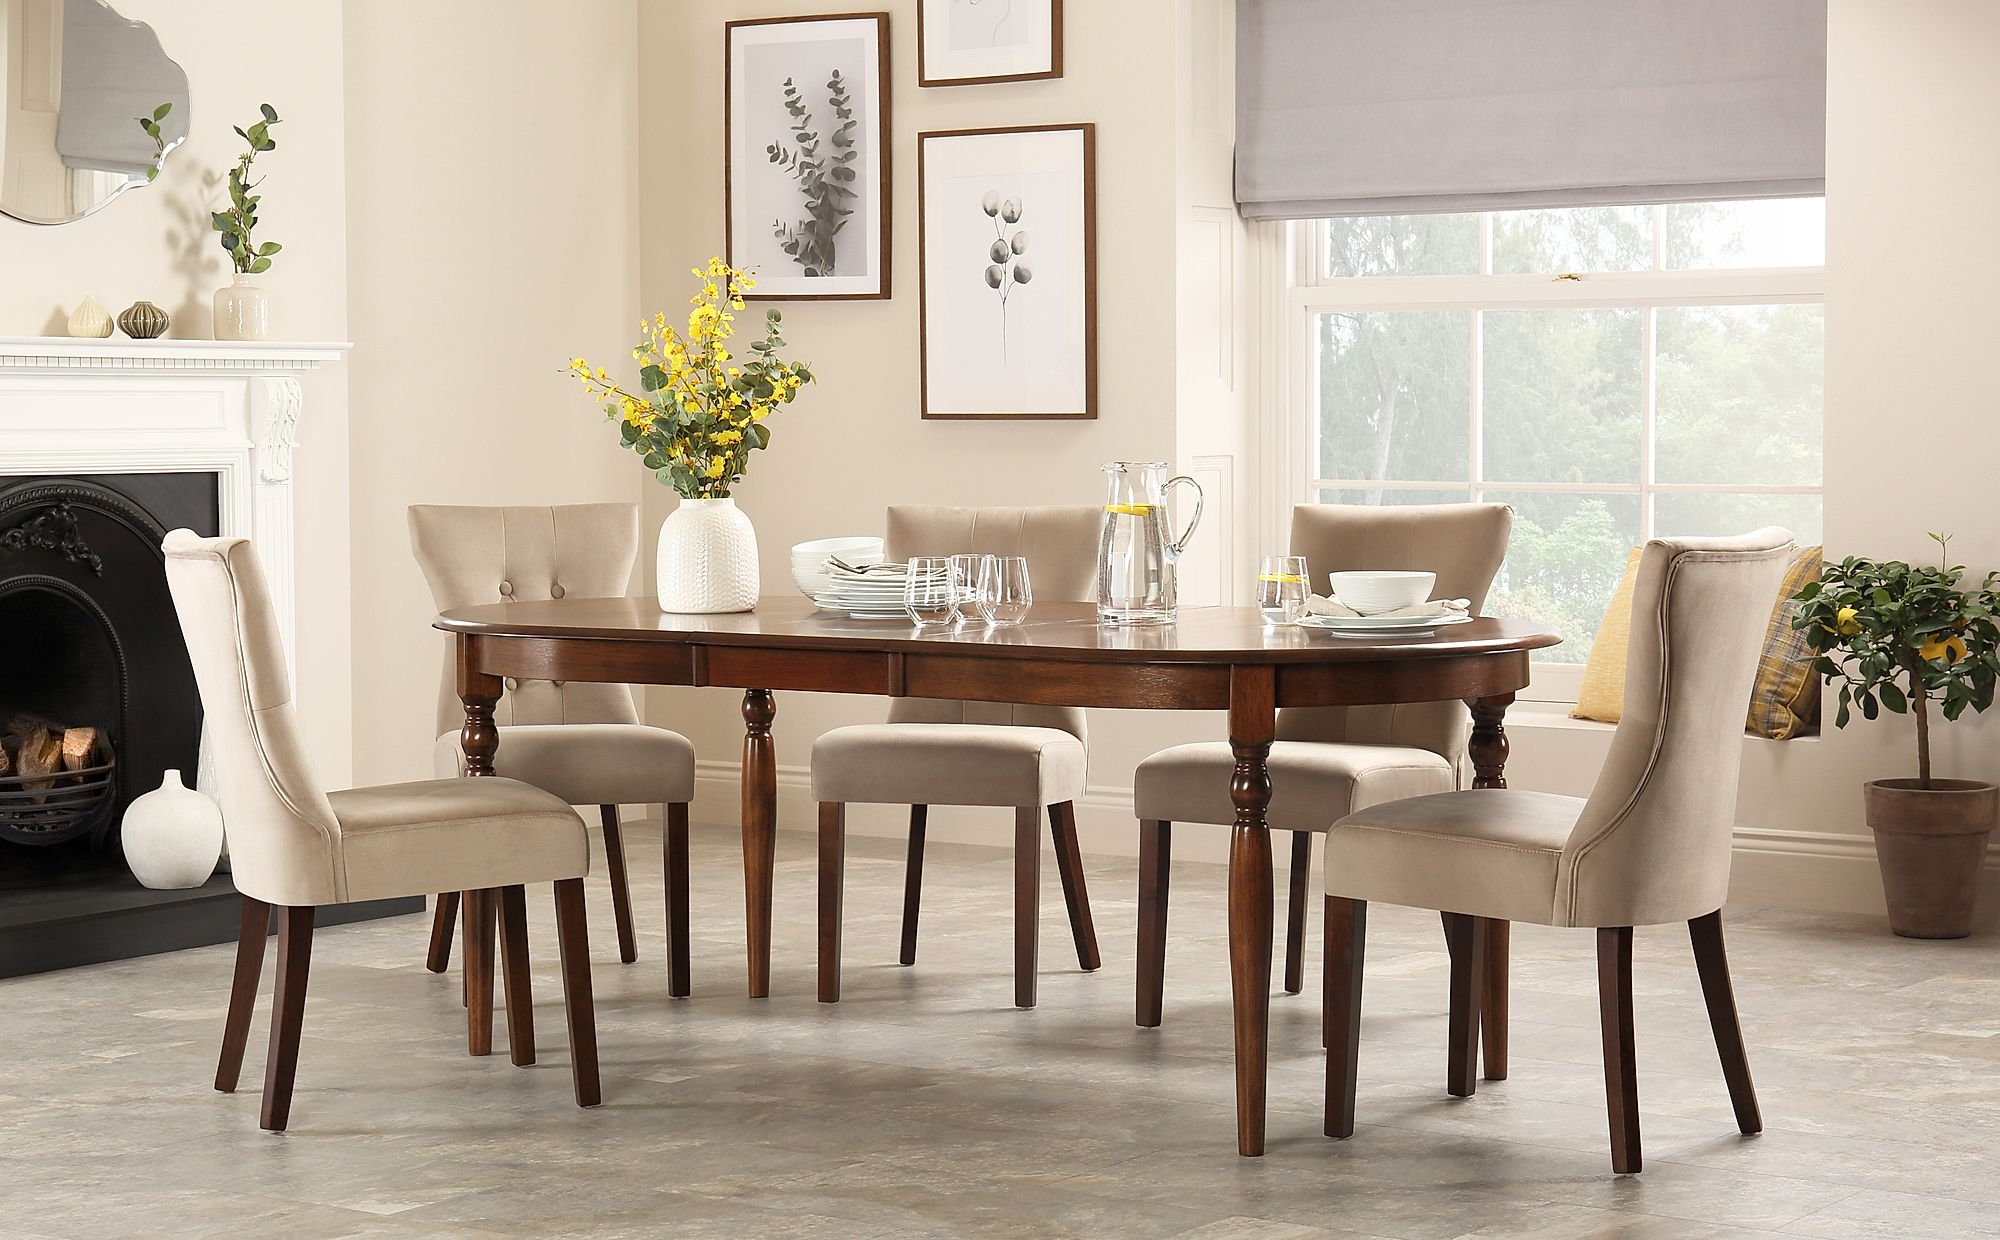 Pleasing Details About Albany Oval Dark Wood Extending Dining Table 4 6 8 Bewley Oatmeal Fabric Chairs Onthecornerstone Fun Painted Chair Ideas Images Onthecornerstoneorg